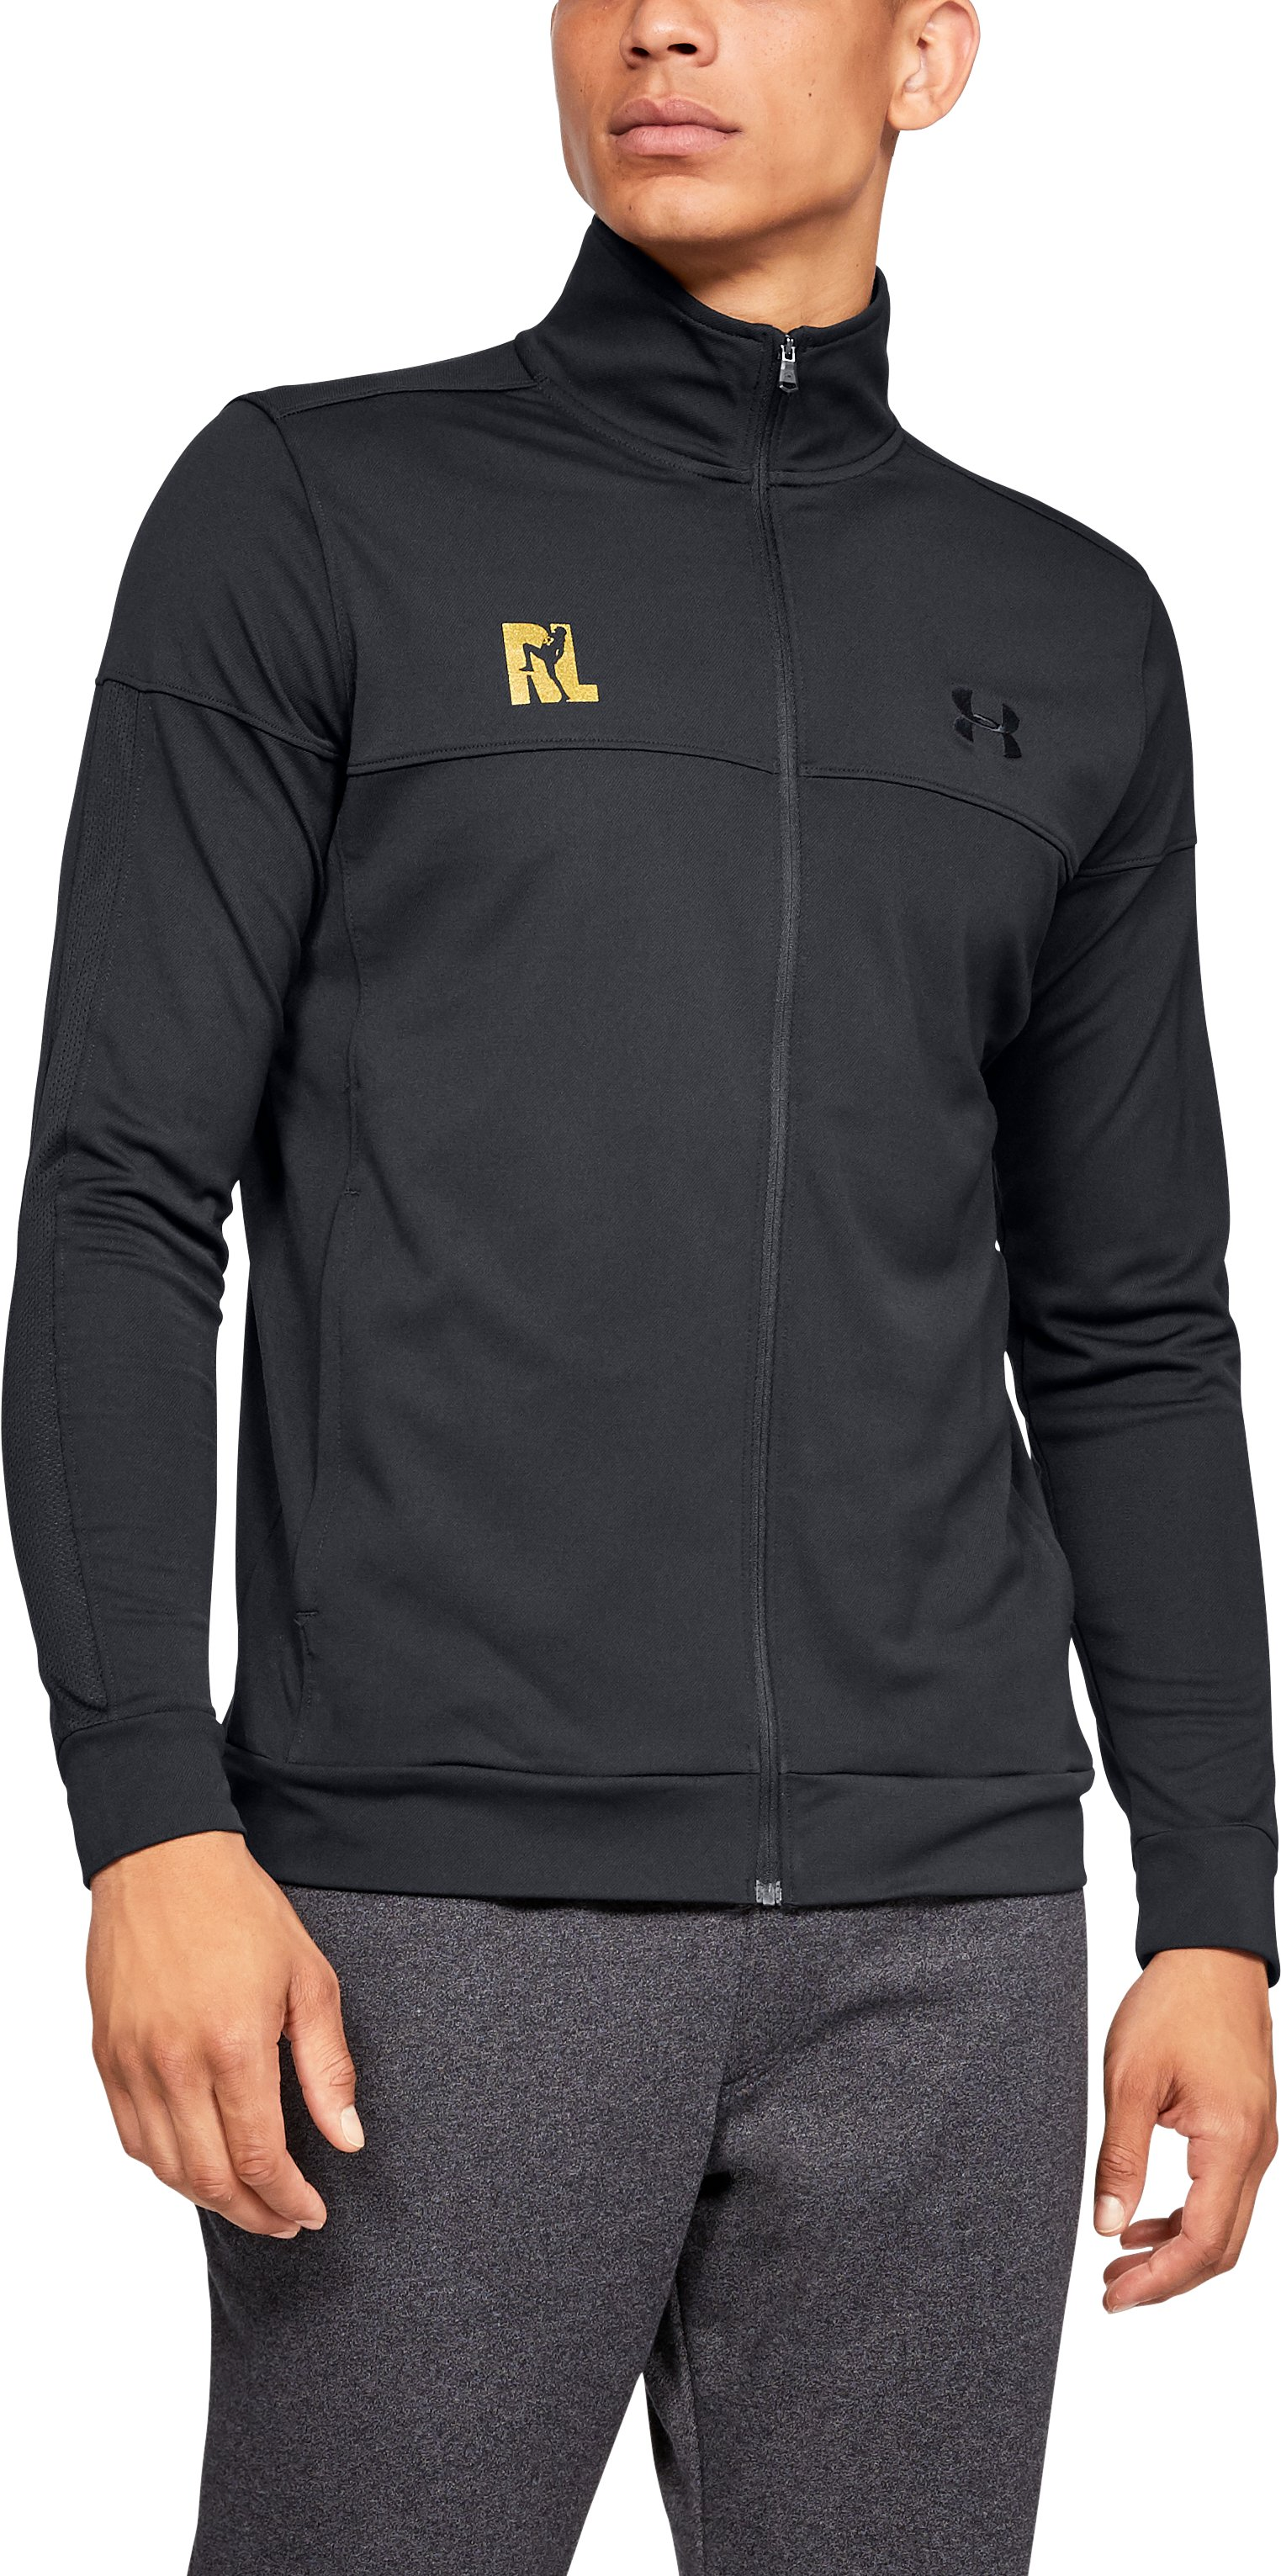 Men's UA Ray Lewis Pique Track Jacket 1 Color $60.00